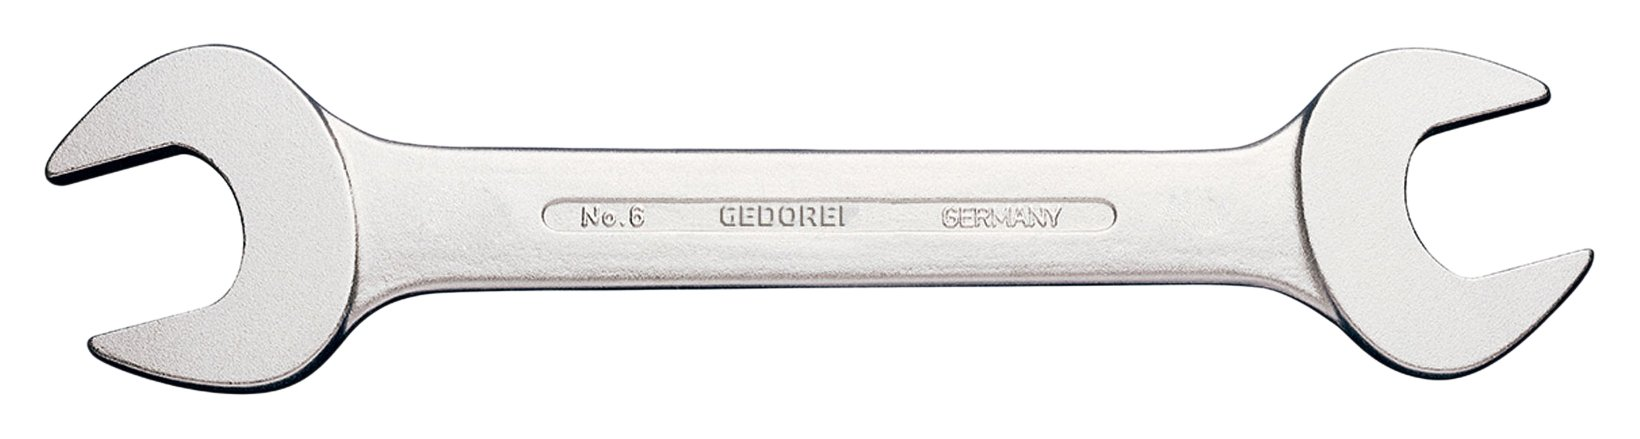 GEDORE 6 27x32 Double Open Ended Spanner 27x32 mm by Gedore